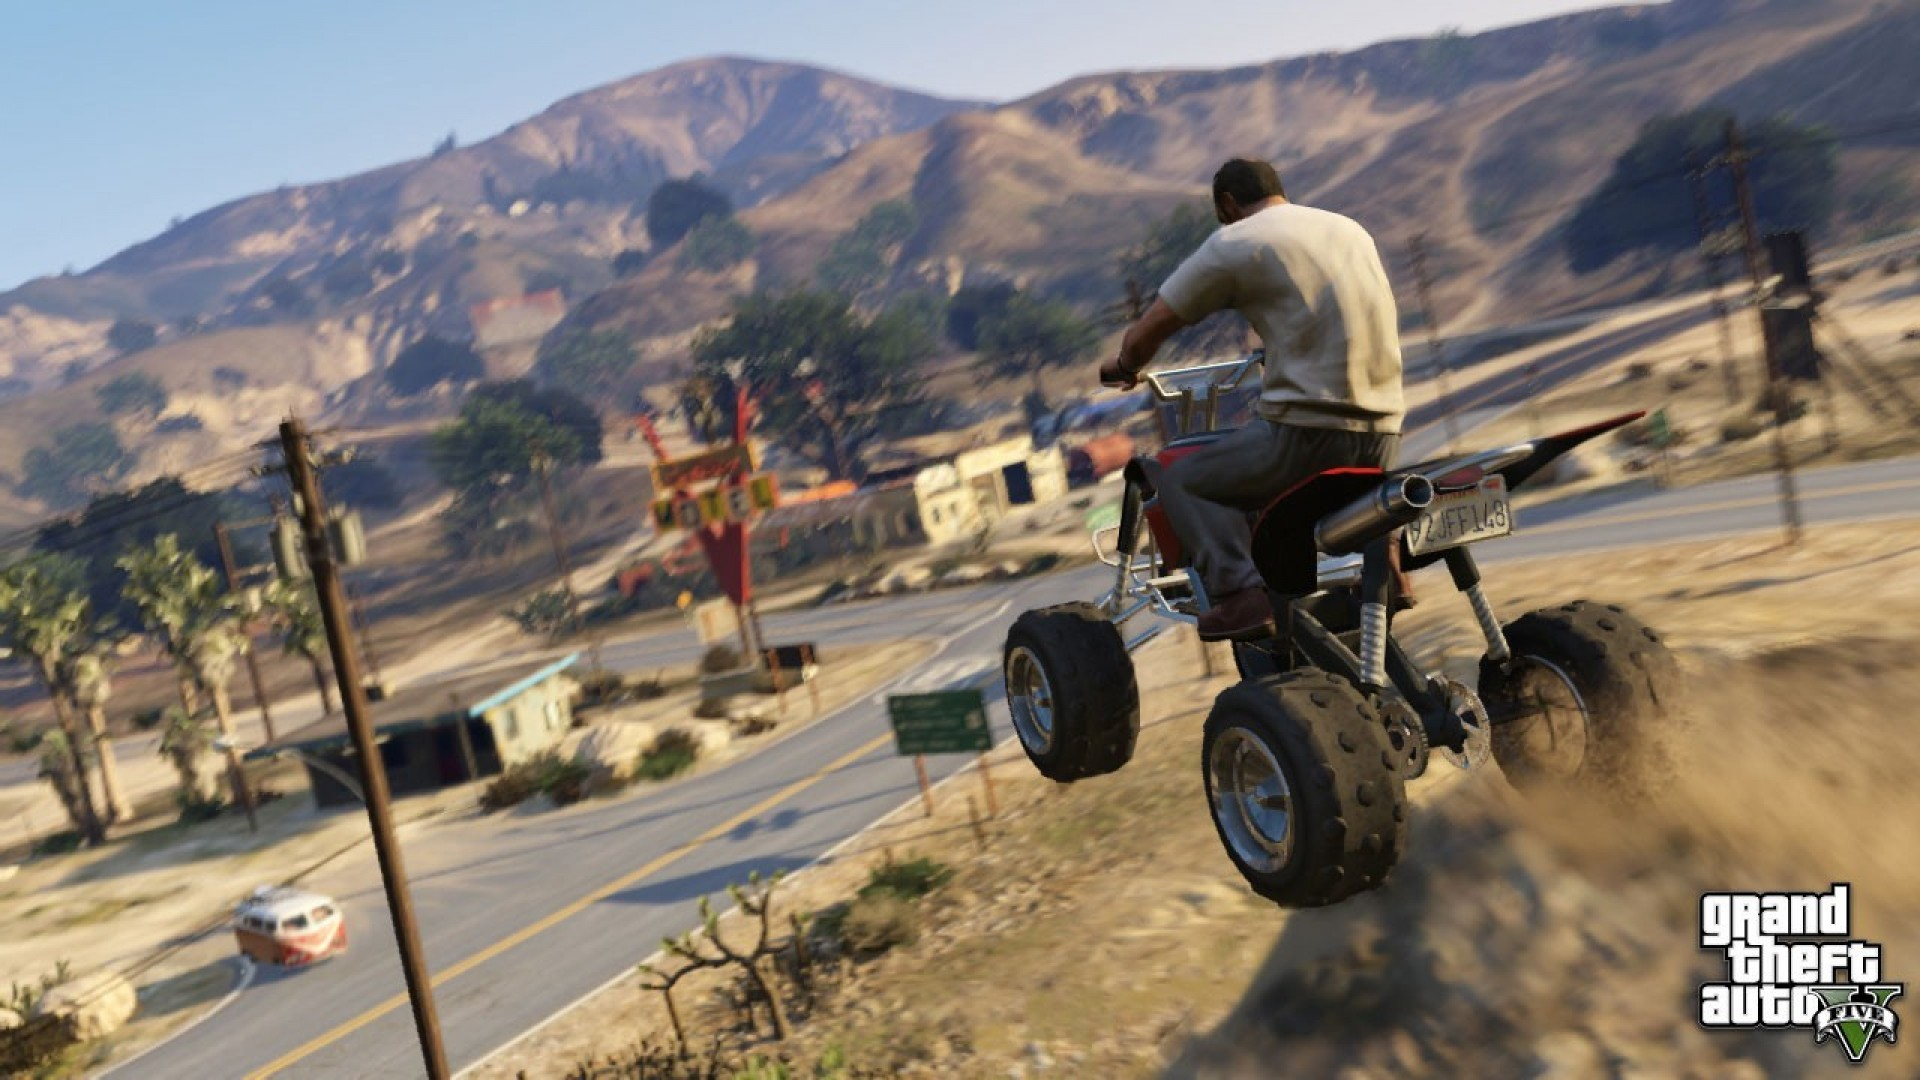 Grand Theft Auto 5 Hd Wallpaper 1920x1080